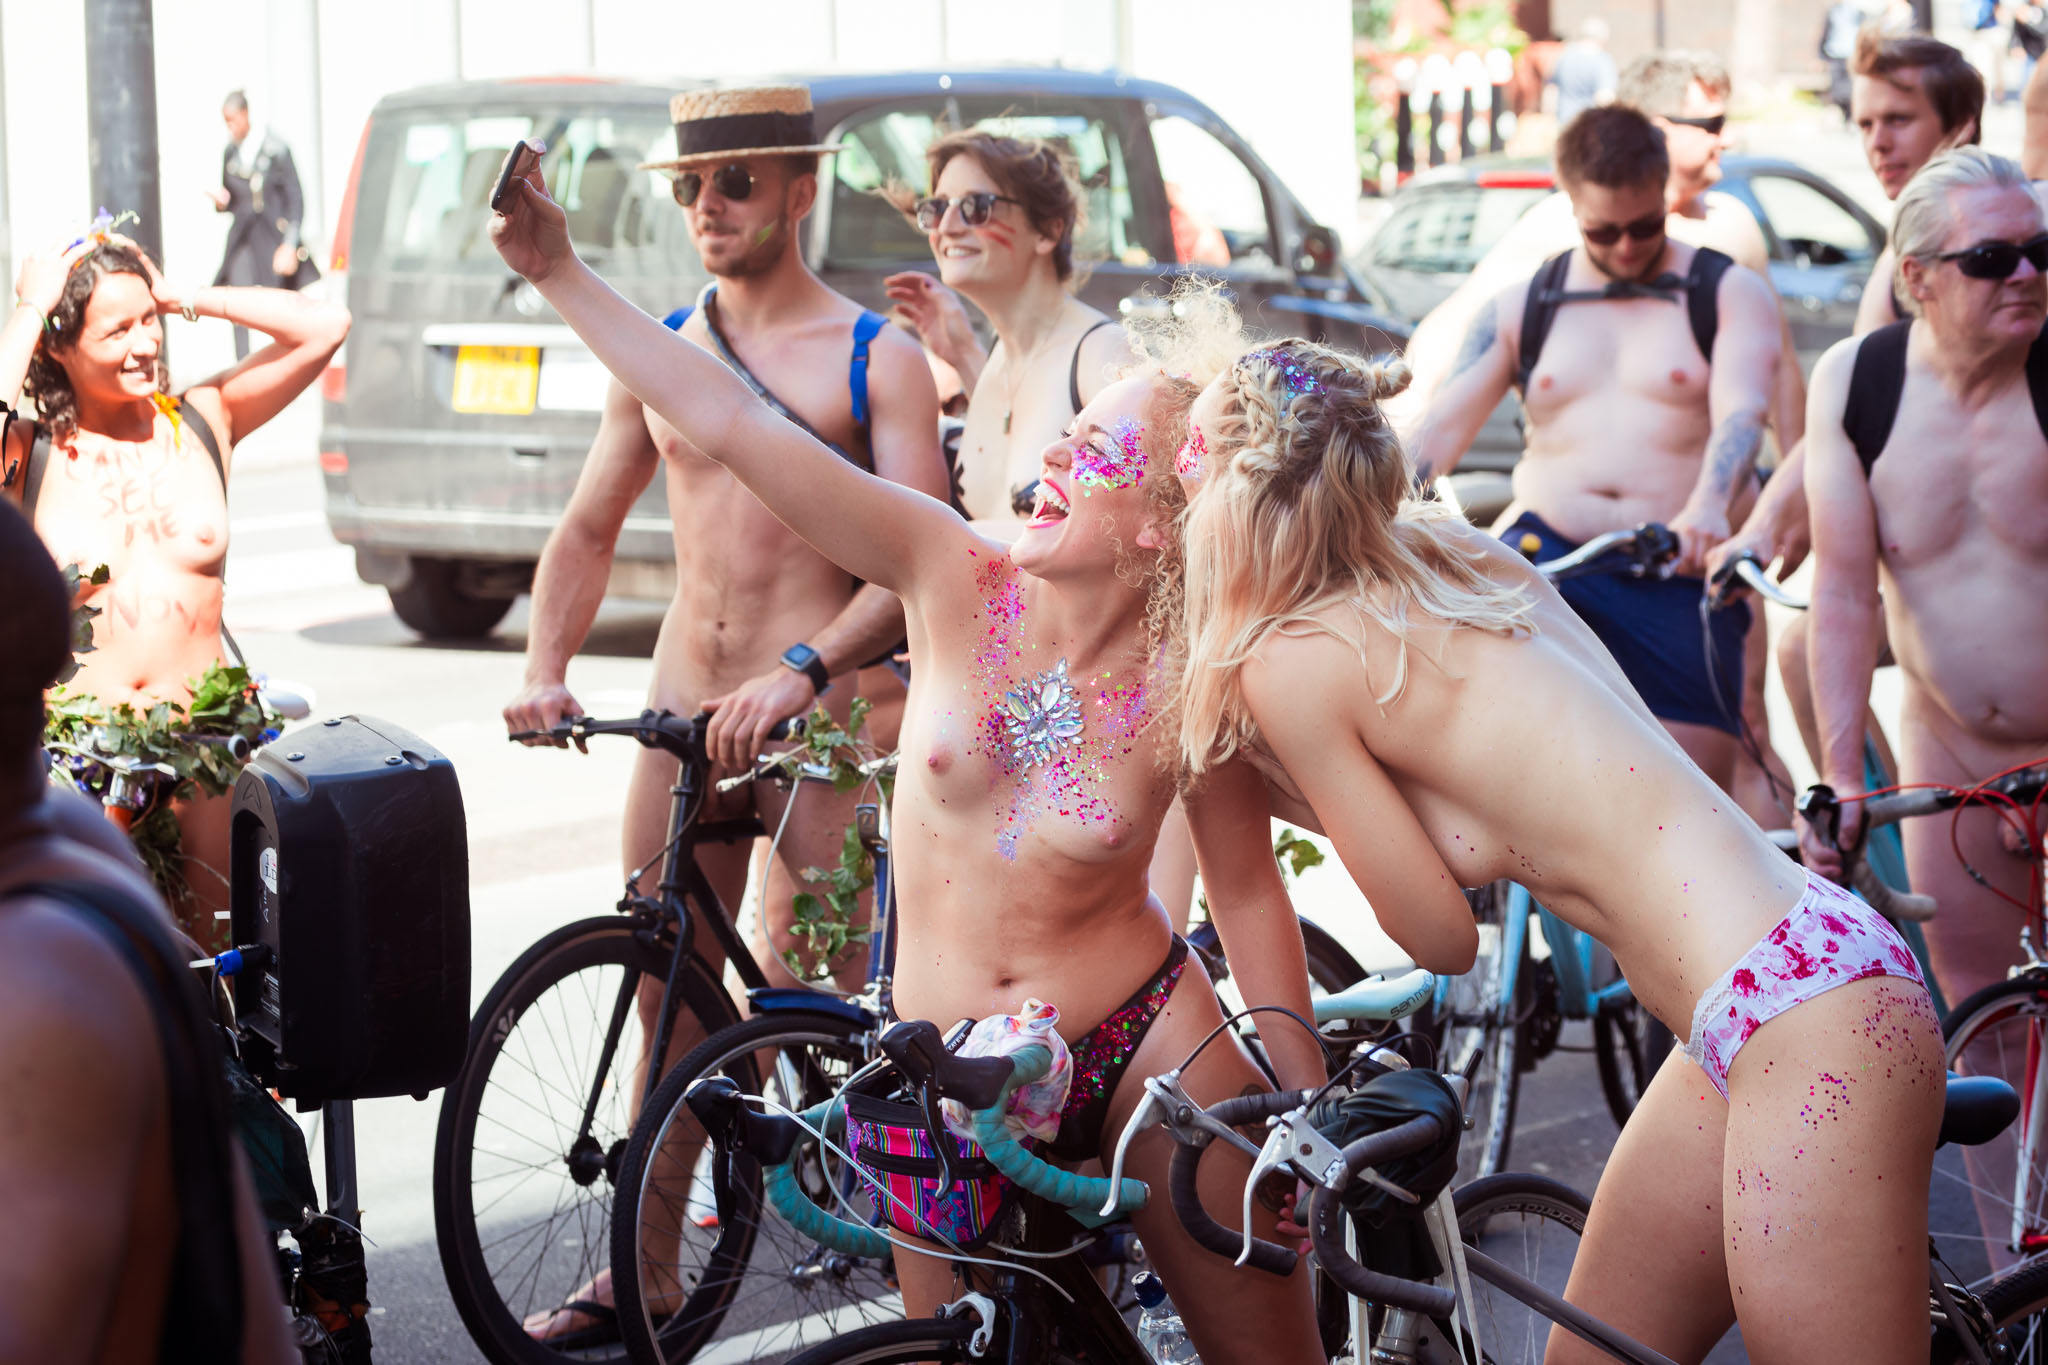 _MG_1643 Naked Bike Ride London 190617 by Alexander Ivanov Photography for web